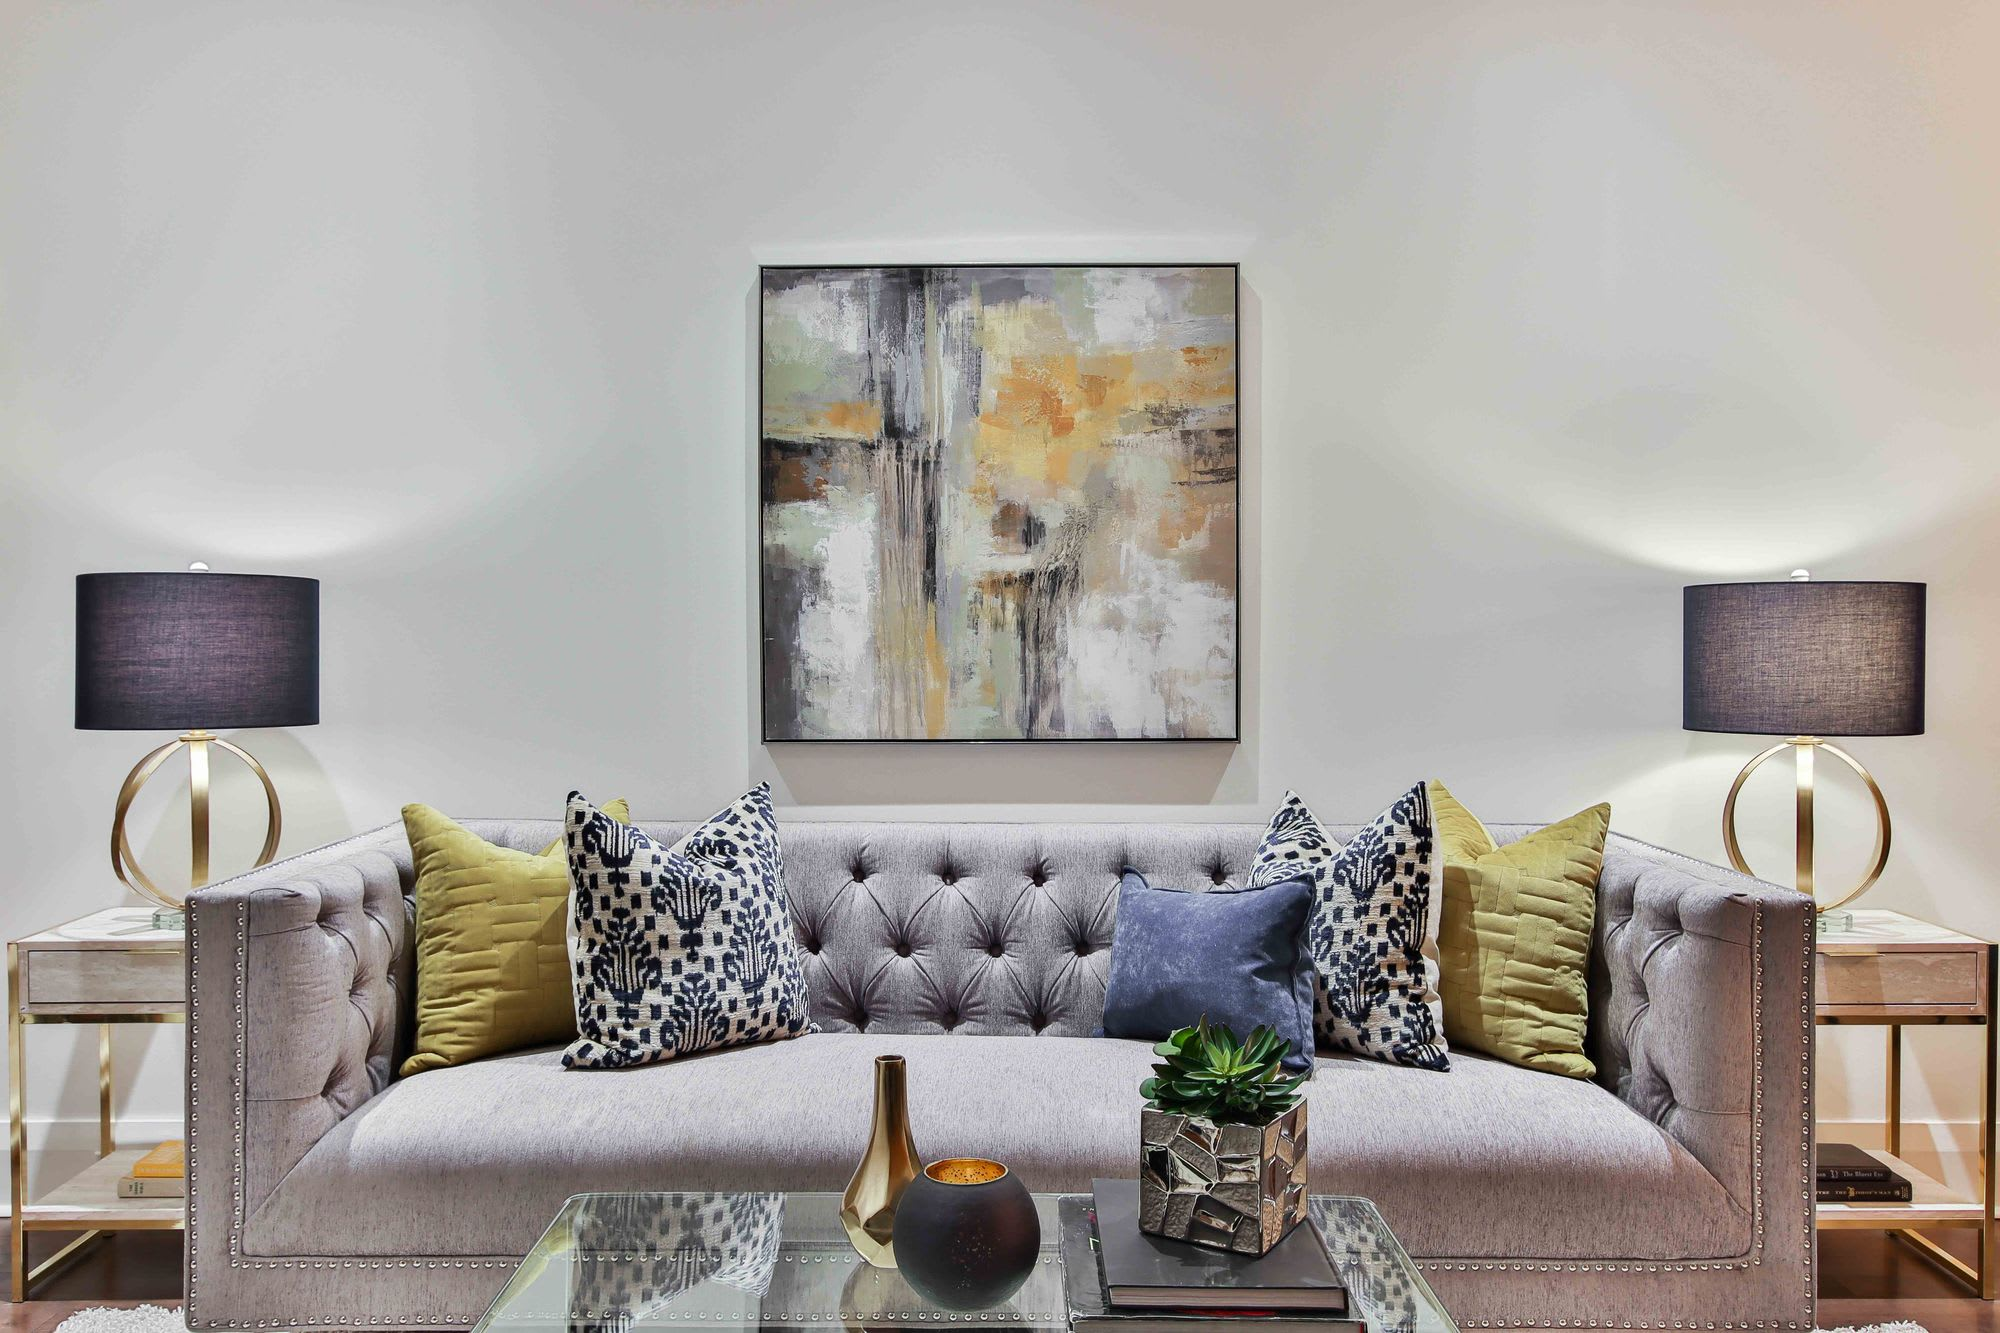 Home decor tips from touch